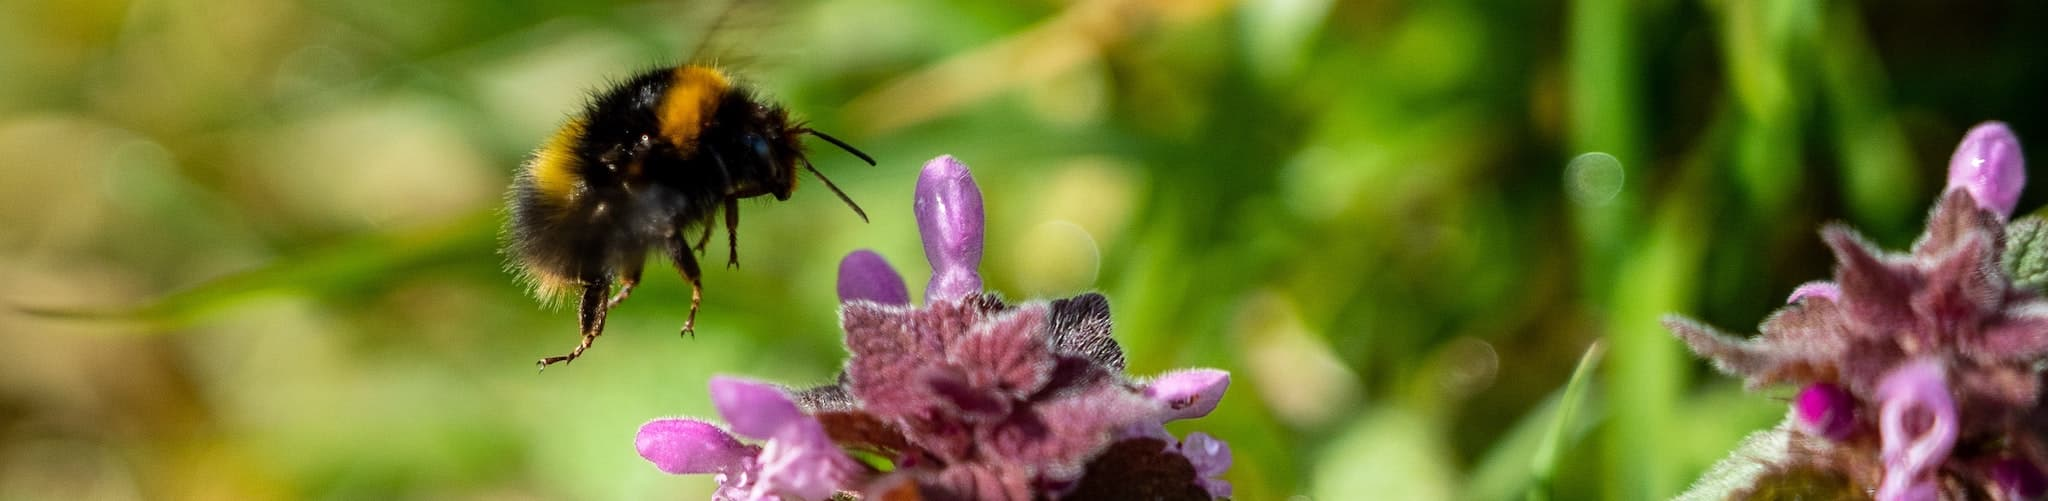 Pollinators Week (Photograph of Bee Pollinating a Flower